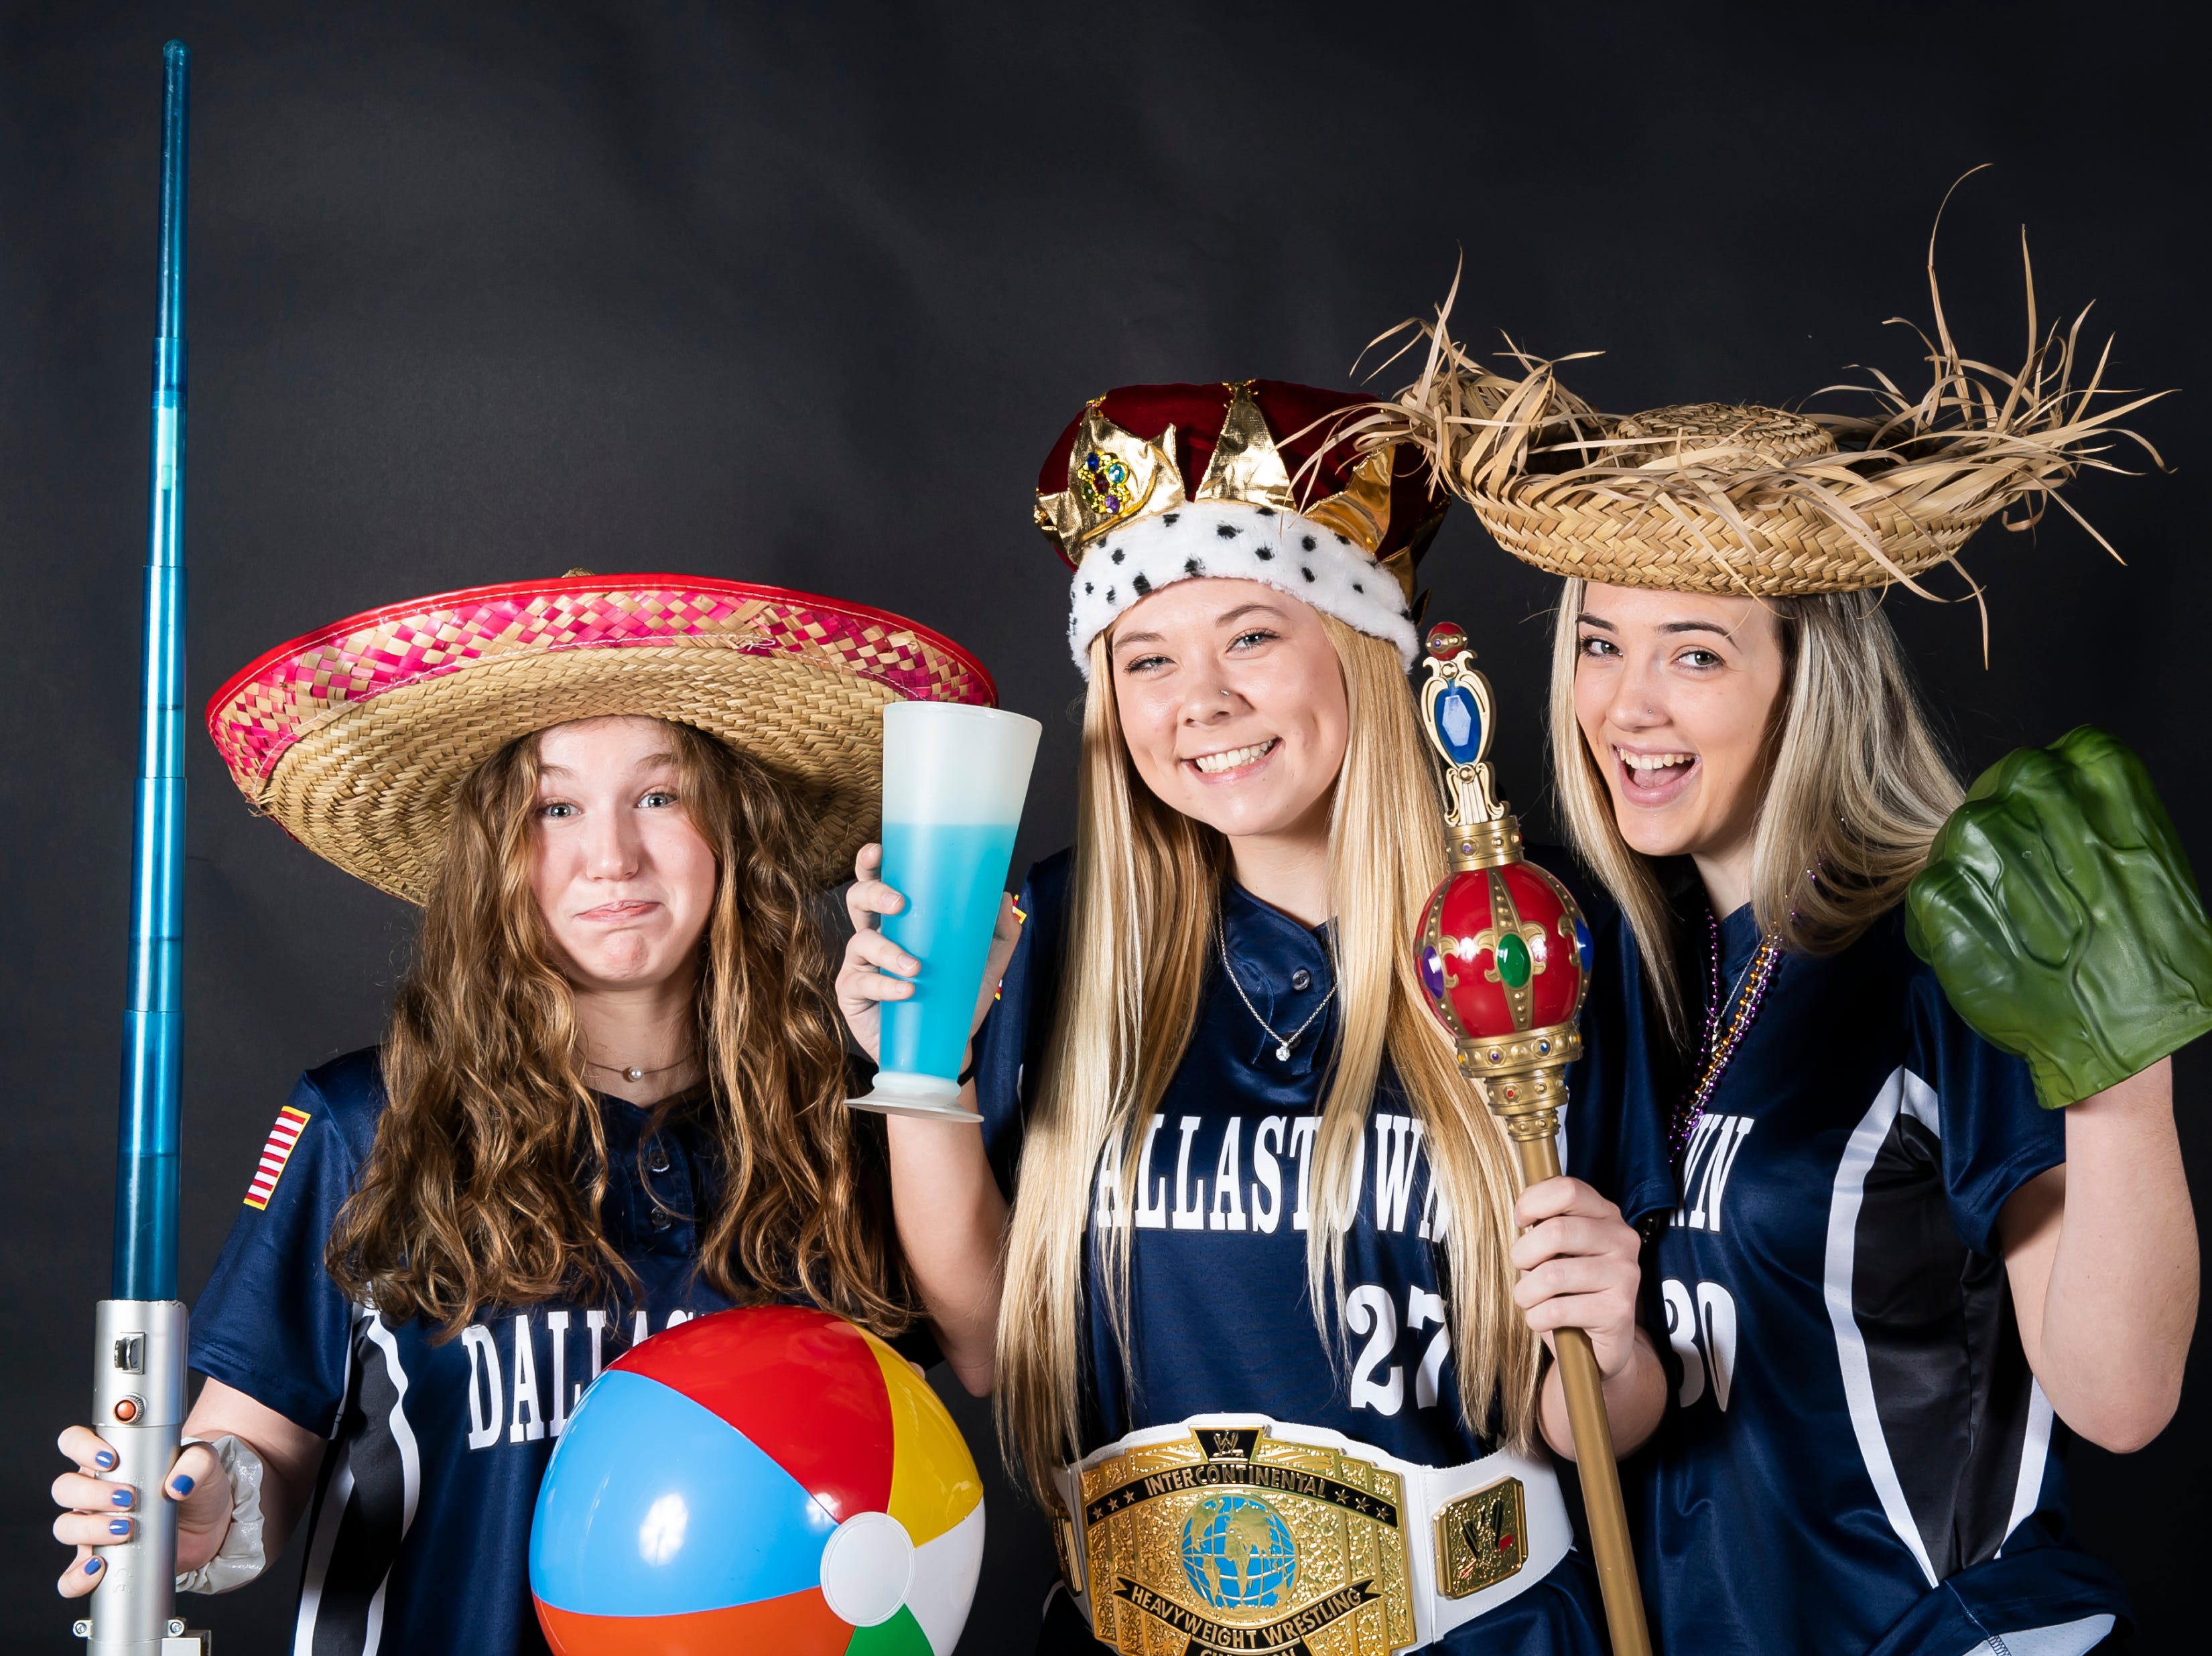 (From left) Dallastown softball players Elaina Winemiller, Kelsie Merriman and Shauna Stotler strike a pose in the GameTimePA photo booth during spring sports media day in York Sunday, March 10, 2019.